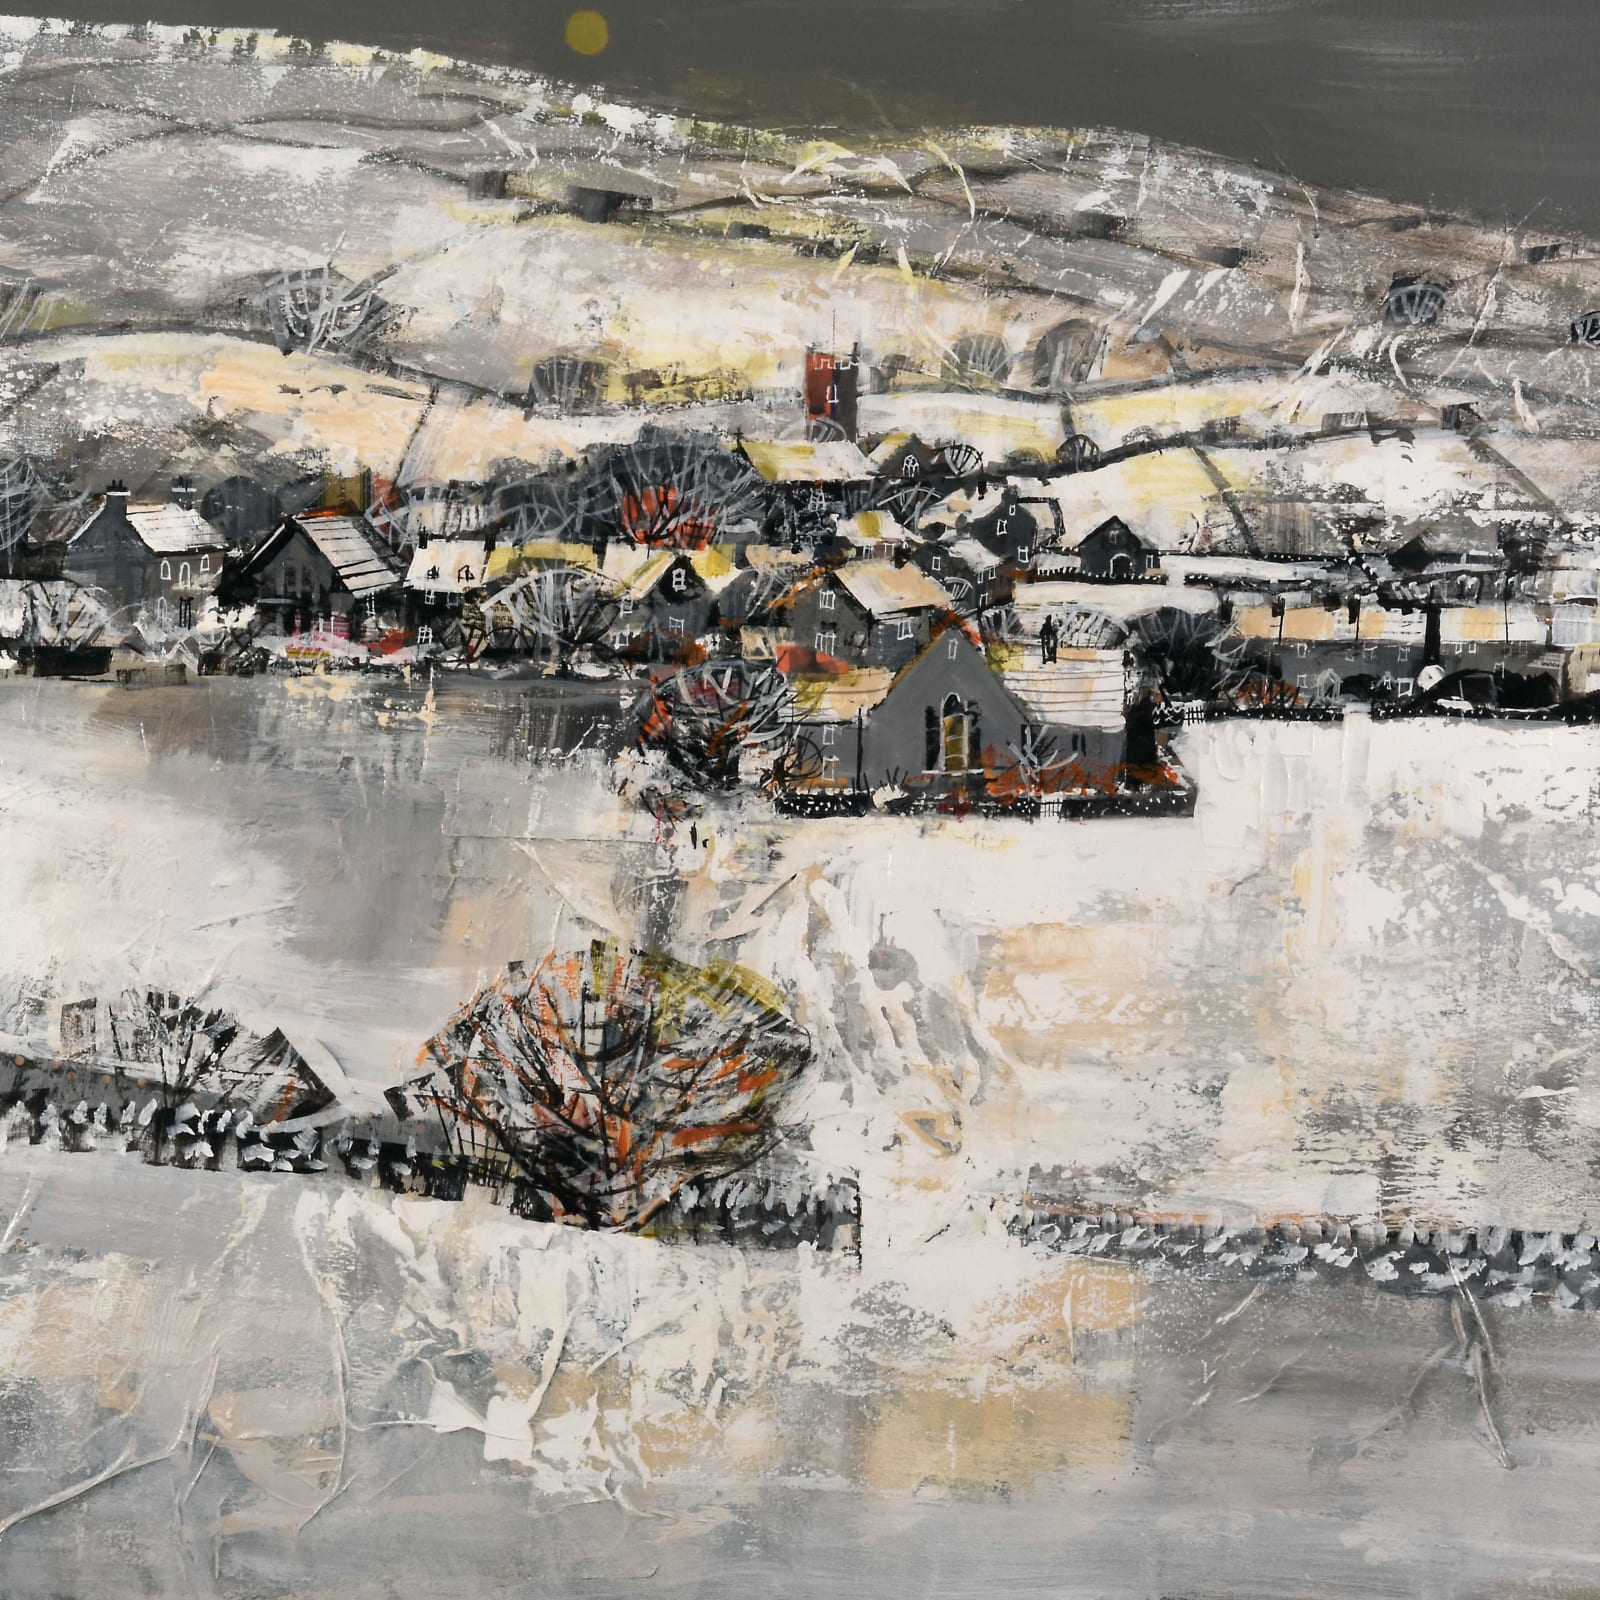 Mike Bernard  HEBDEN IN THE SNOW  Mixed Media  28 x 36 in. 71.12 x 91.44 cm